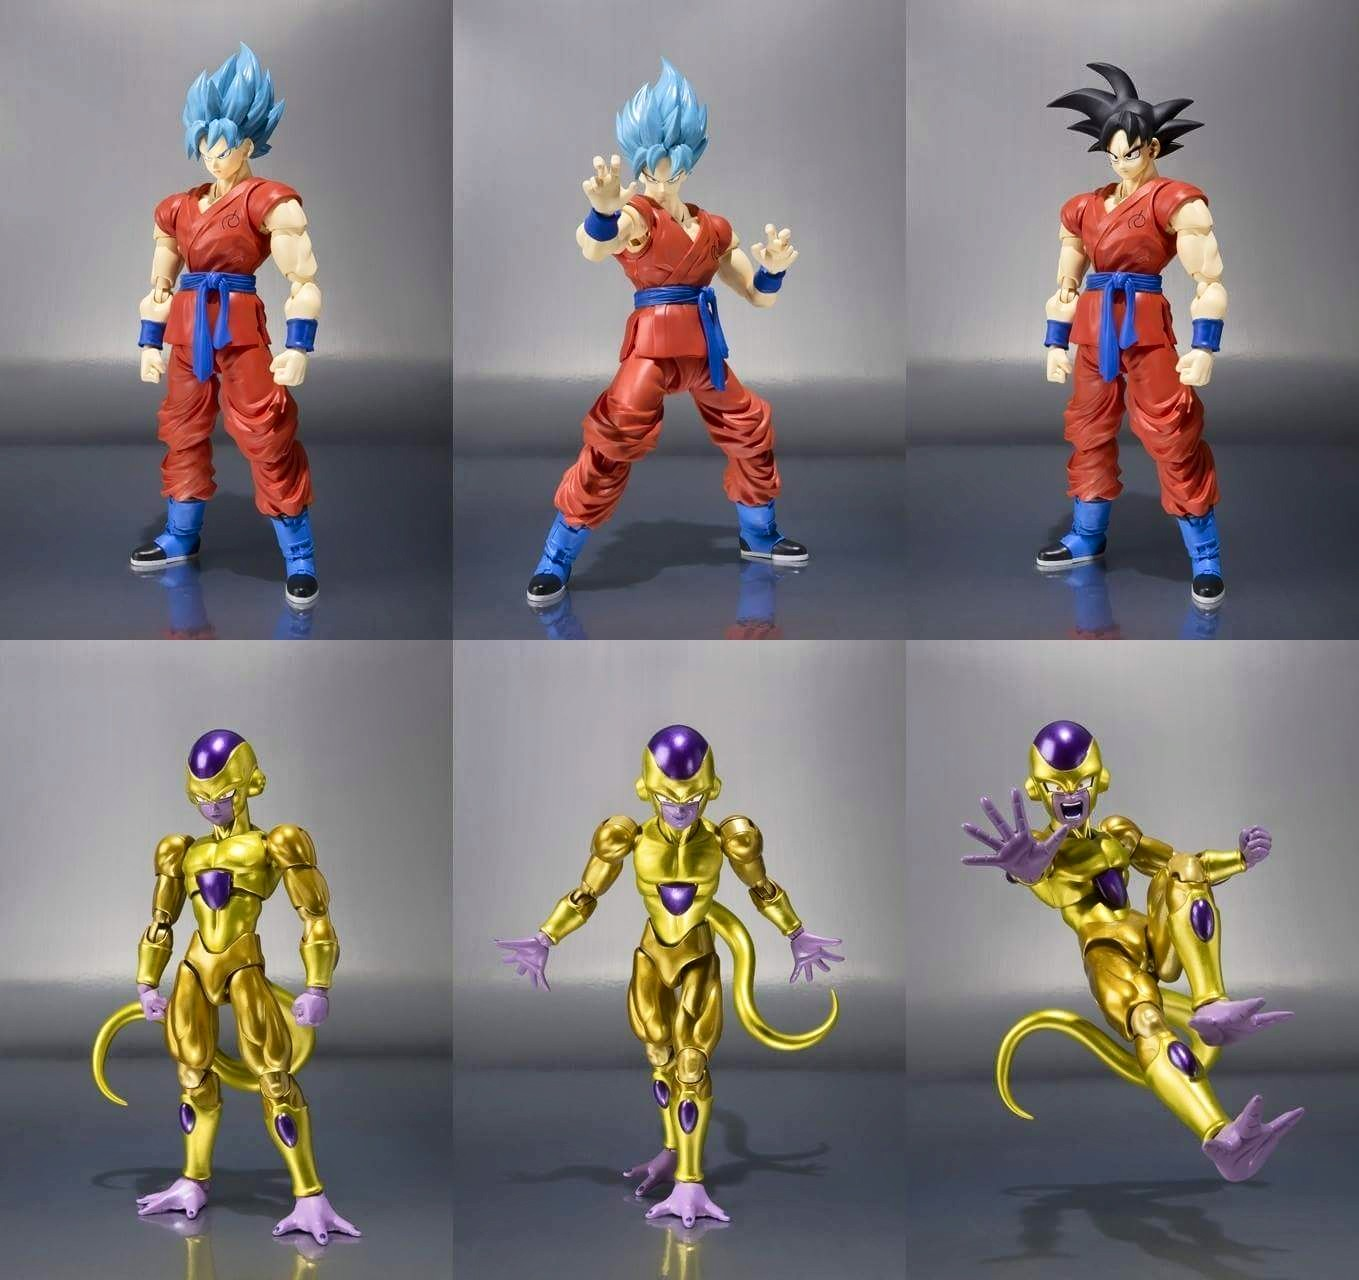 SH Figuarts Golden Frieza and Super Saiyan God Goku